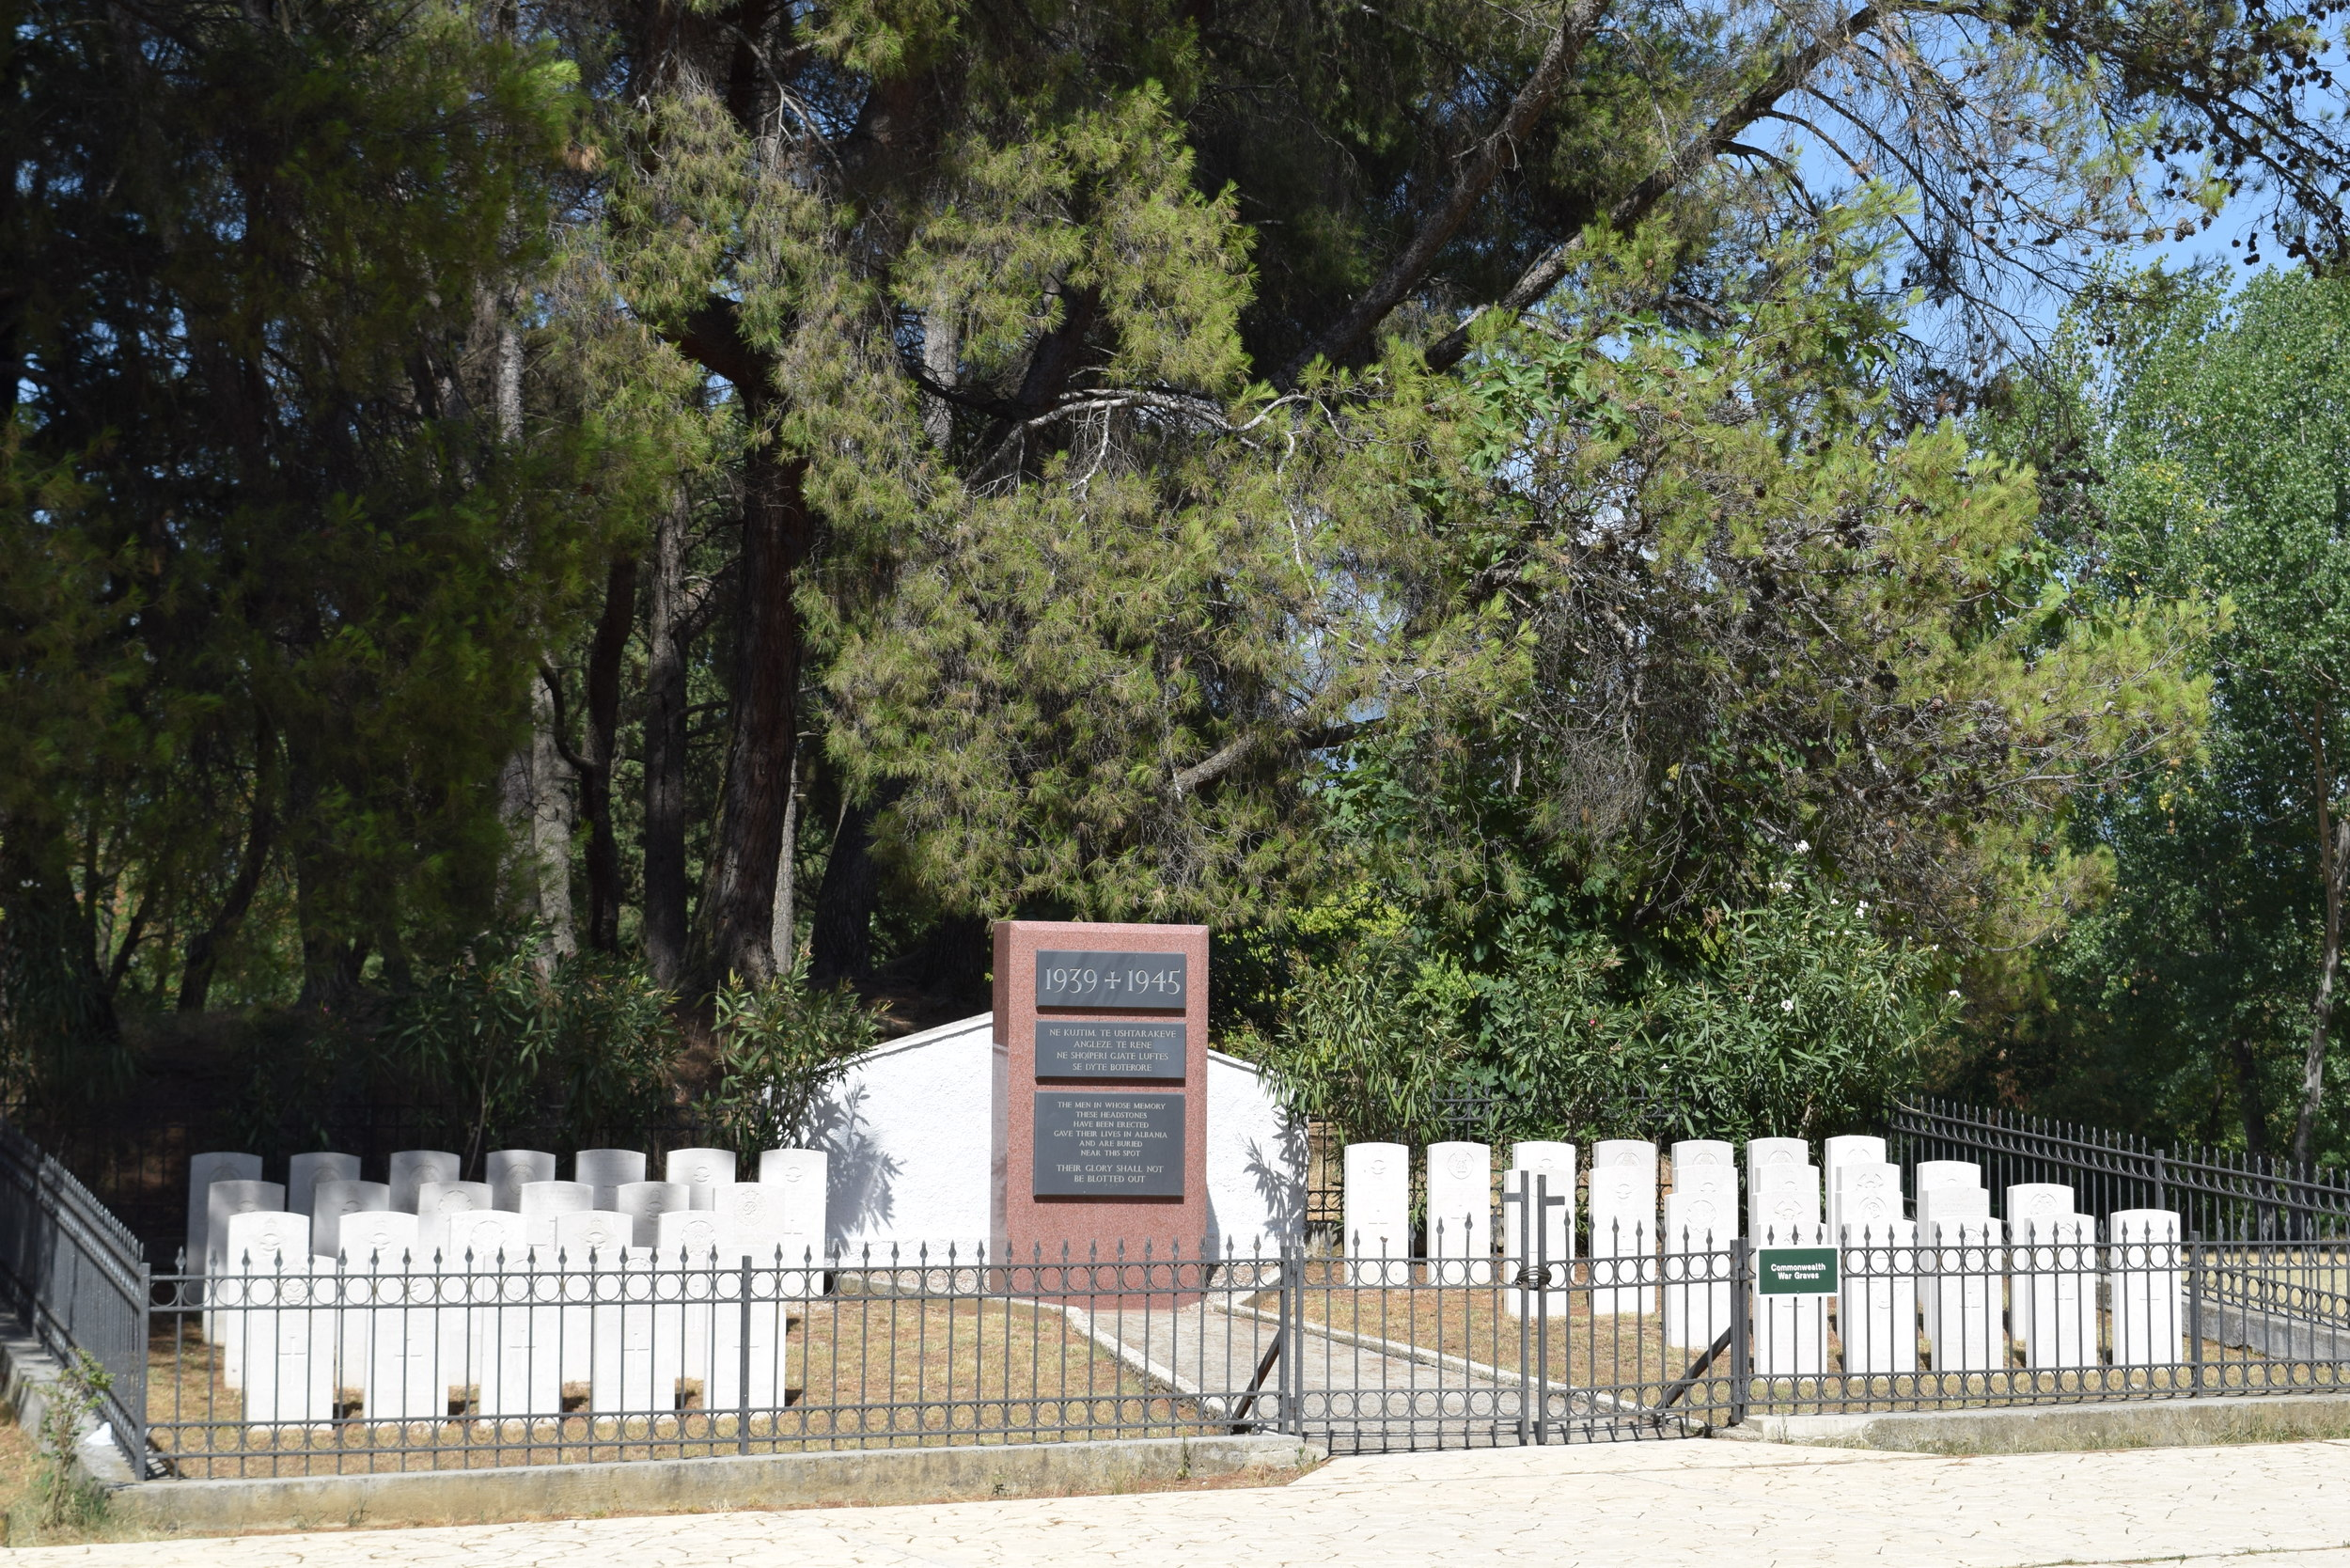 The Commonwealth cemetery in the park